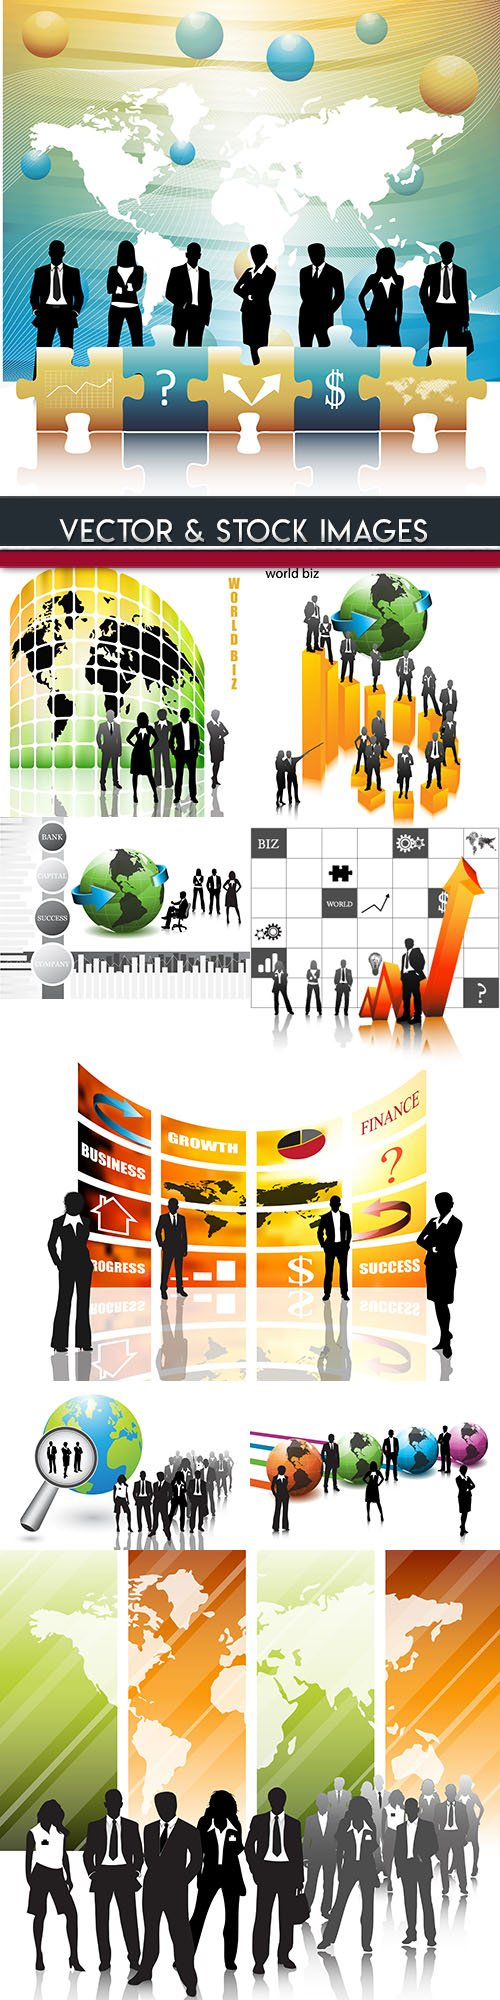 Business silhouettes design people work team